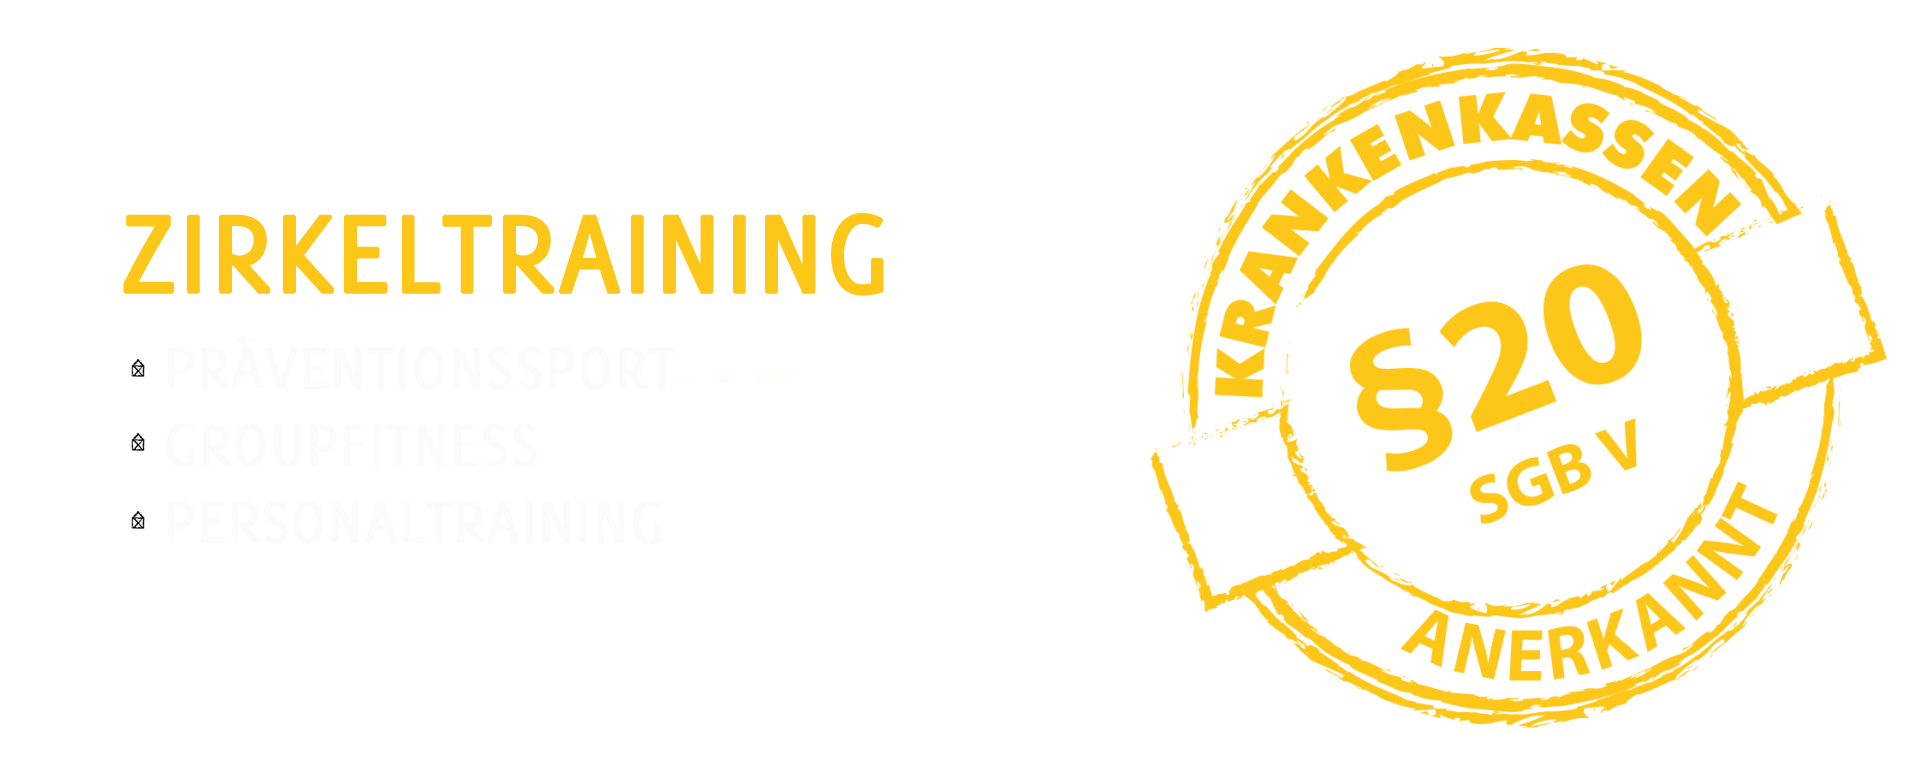 Zirkeltraining als Präventionssport, Groupfitness, Personaltraining